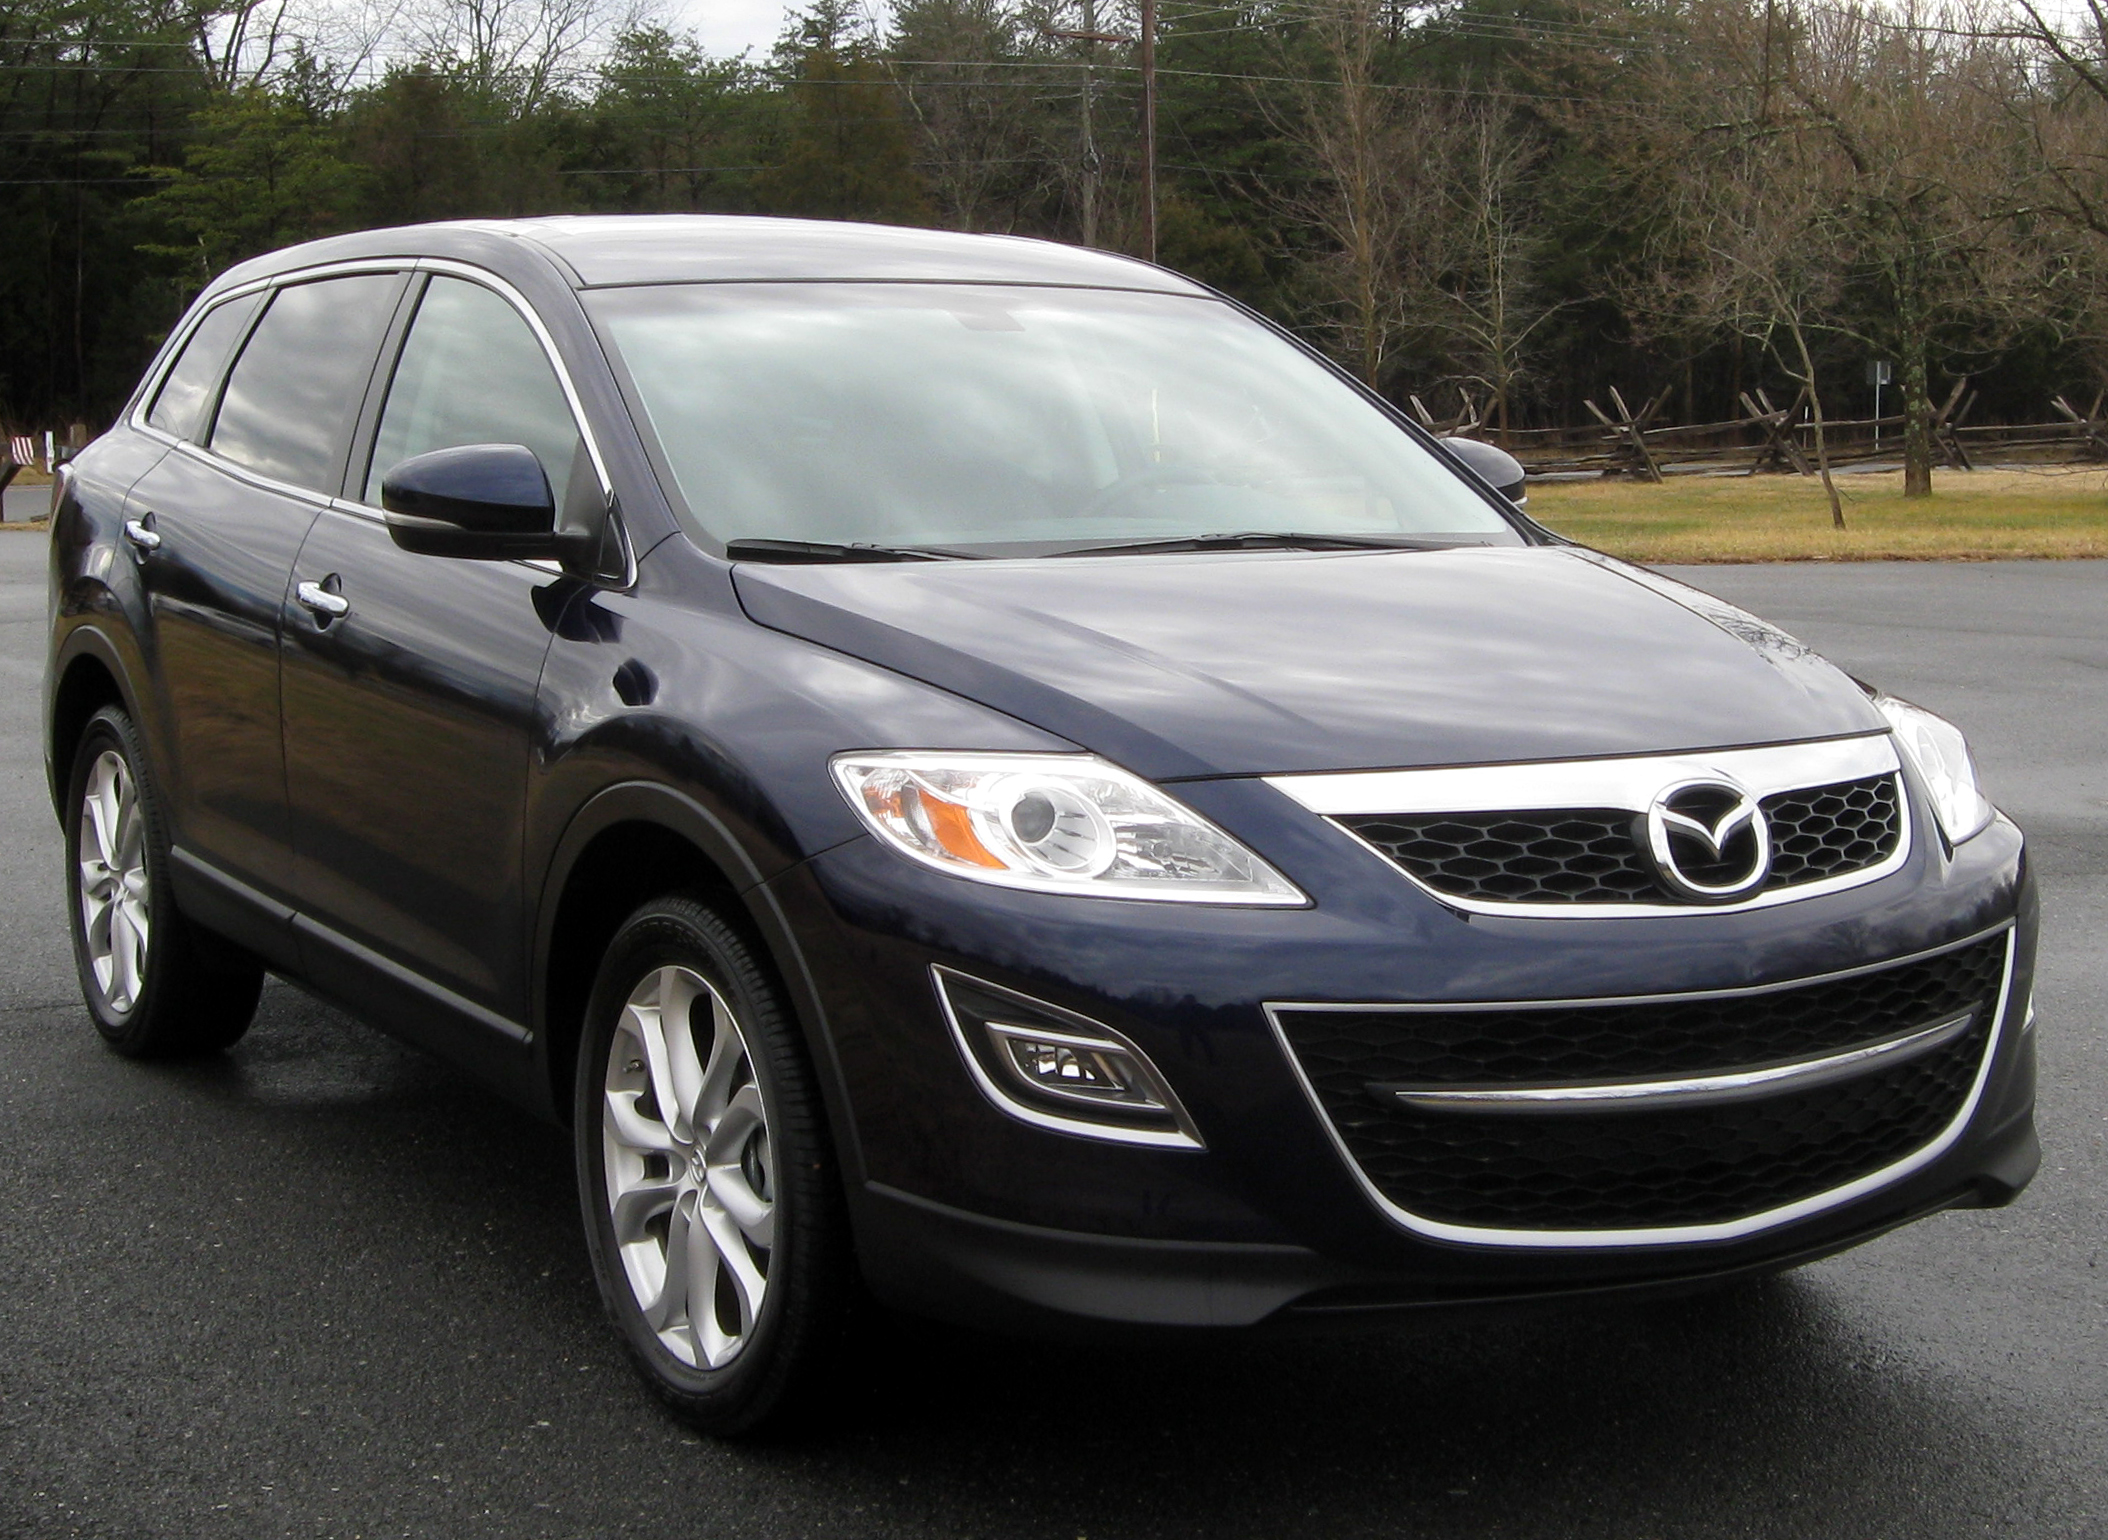 file:2012 mazda cx-9 grand touring -- 01-27-2012 - wikimedia